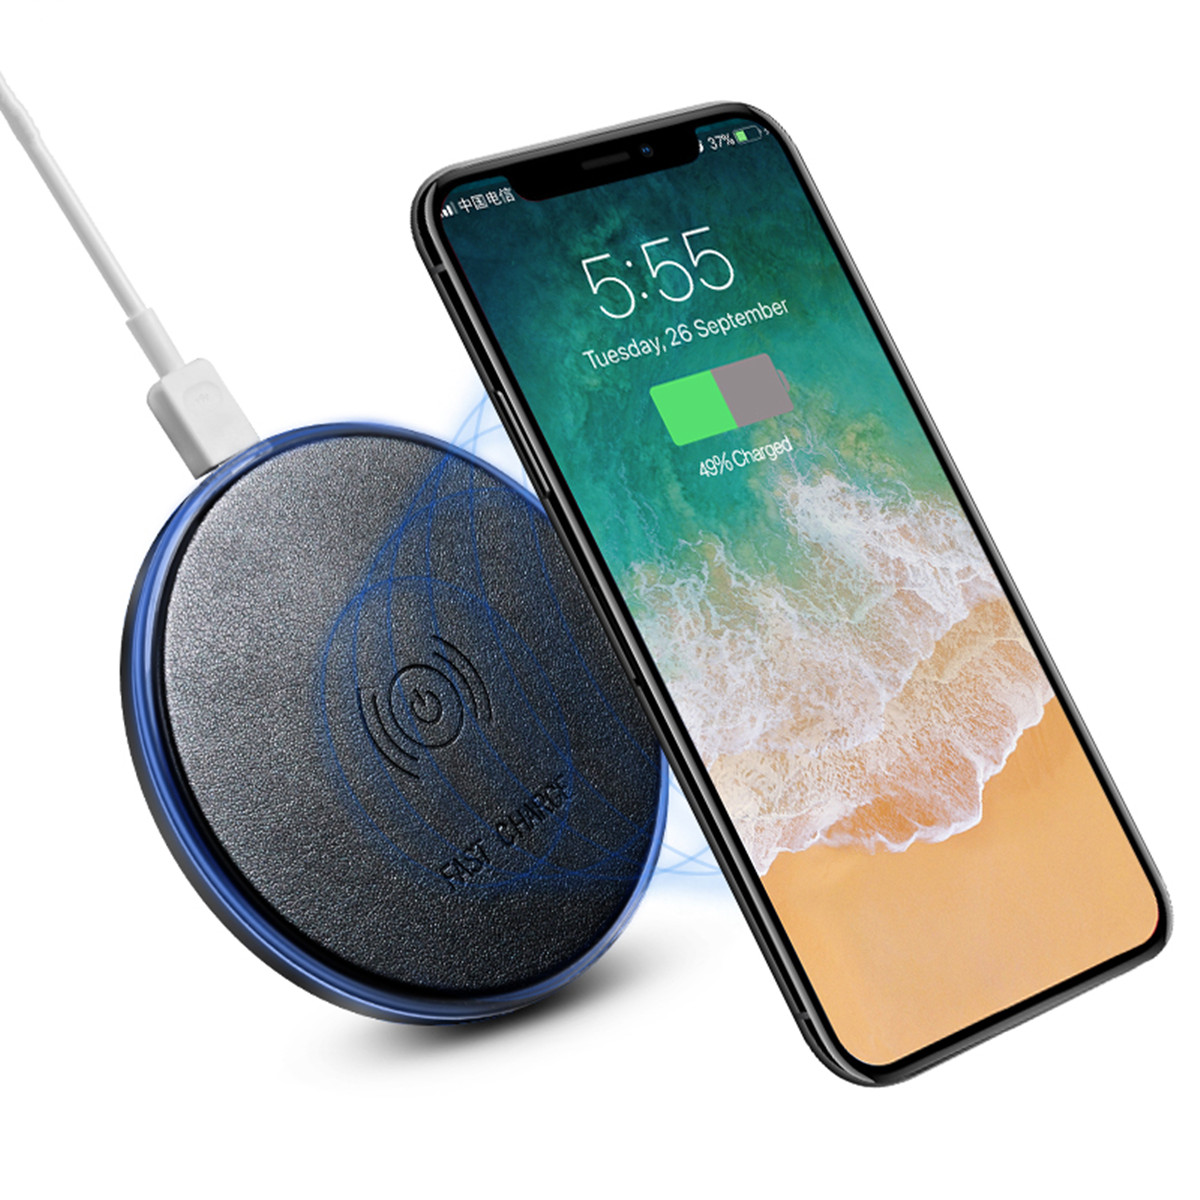 D6 2A Qi Wireless Fast Charger Charging Pad Mat Dock For iPhone X/8/Plus Samsung S8